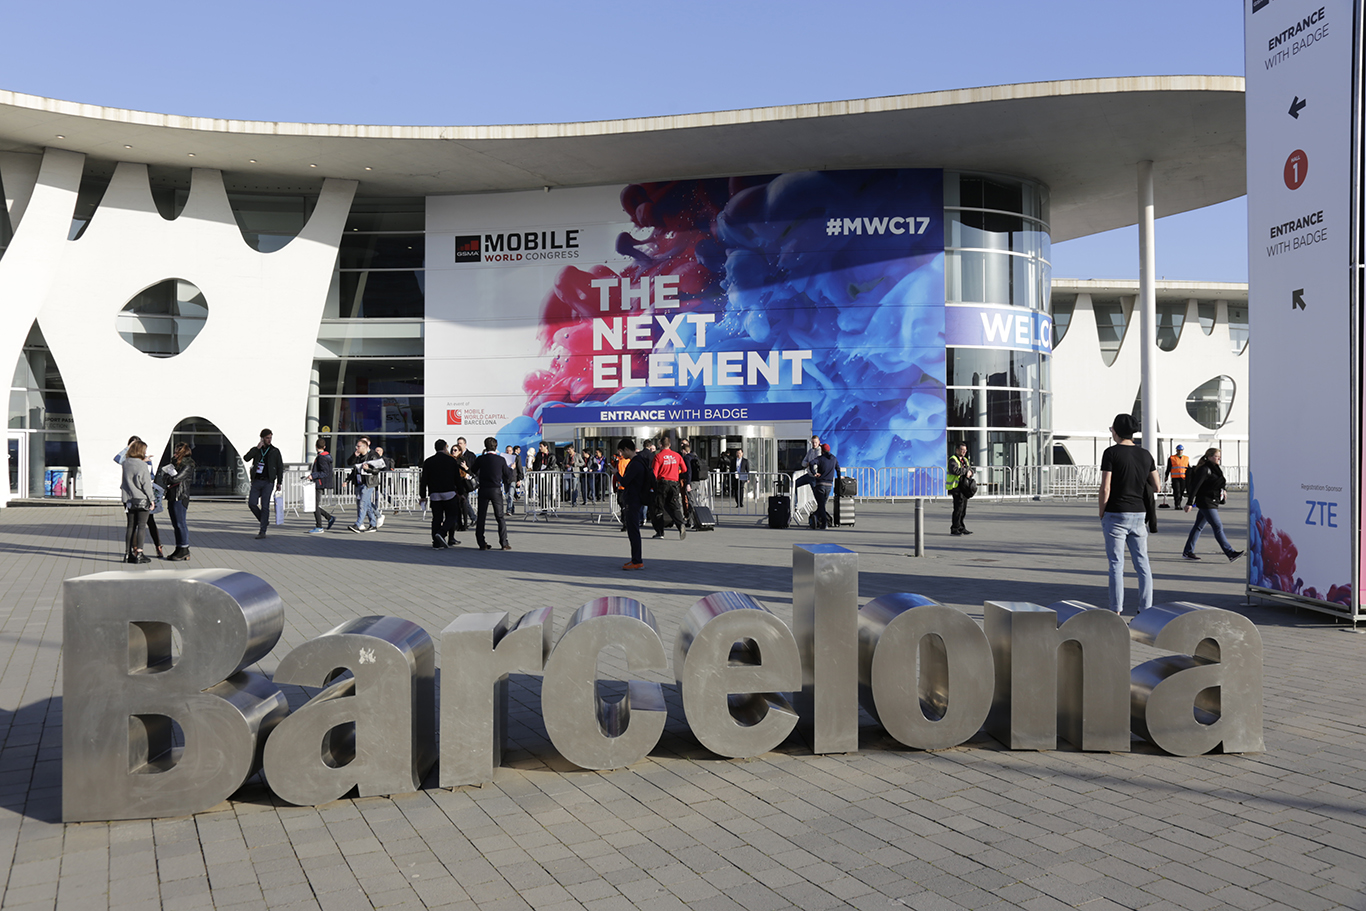 5 ways to make the most of Mobile World Congress, Barcelona